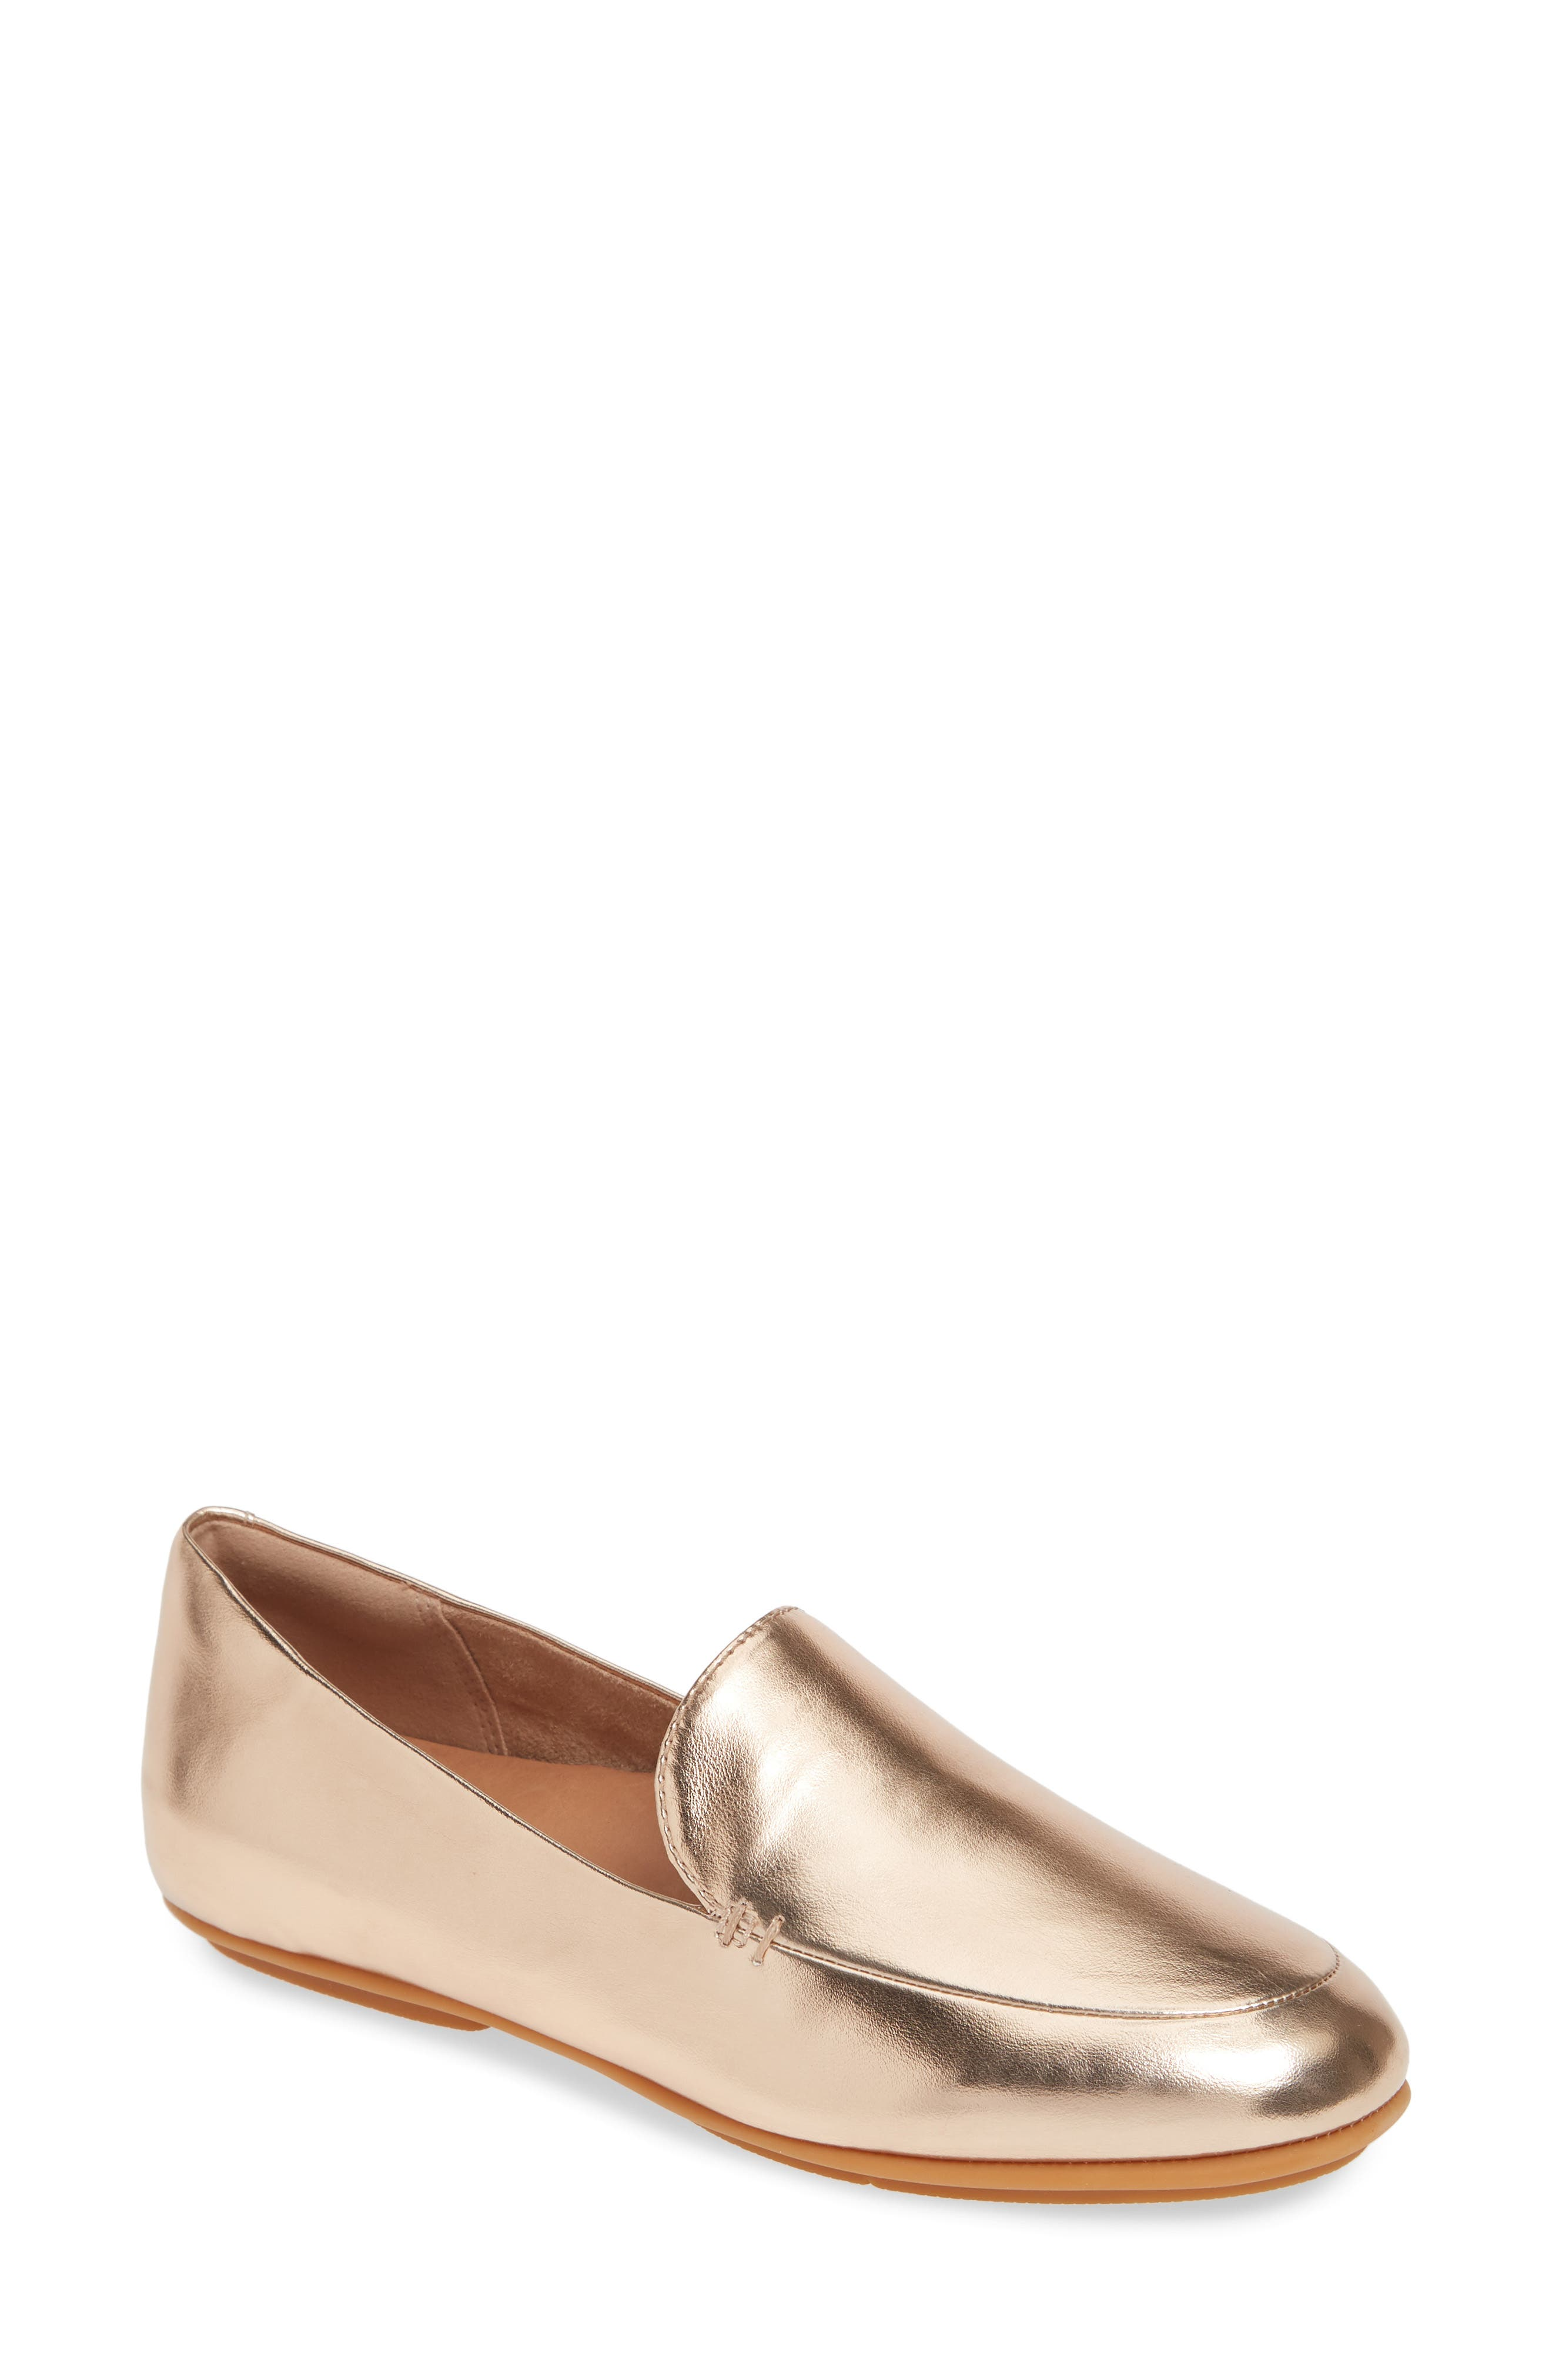 loafers sale womens